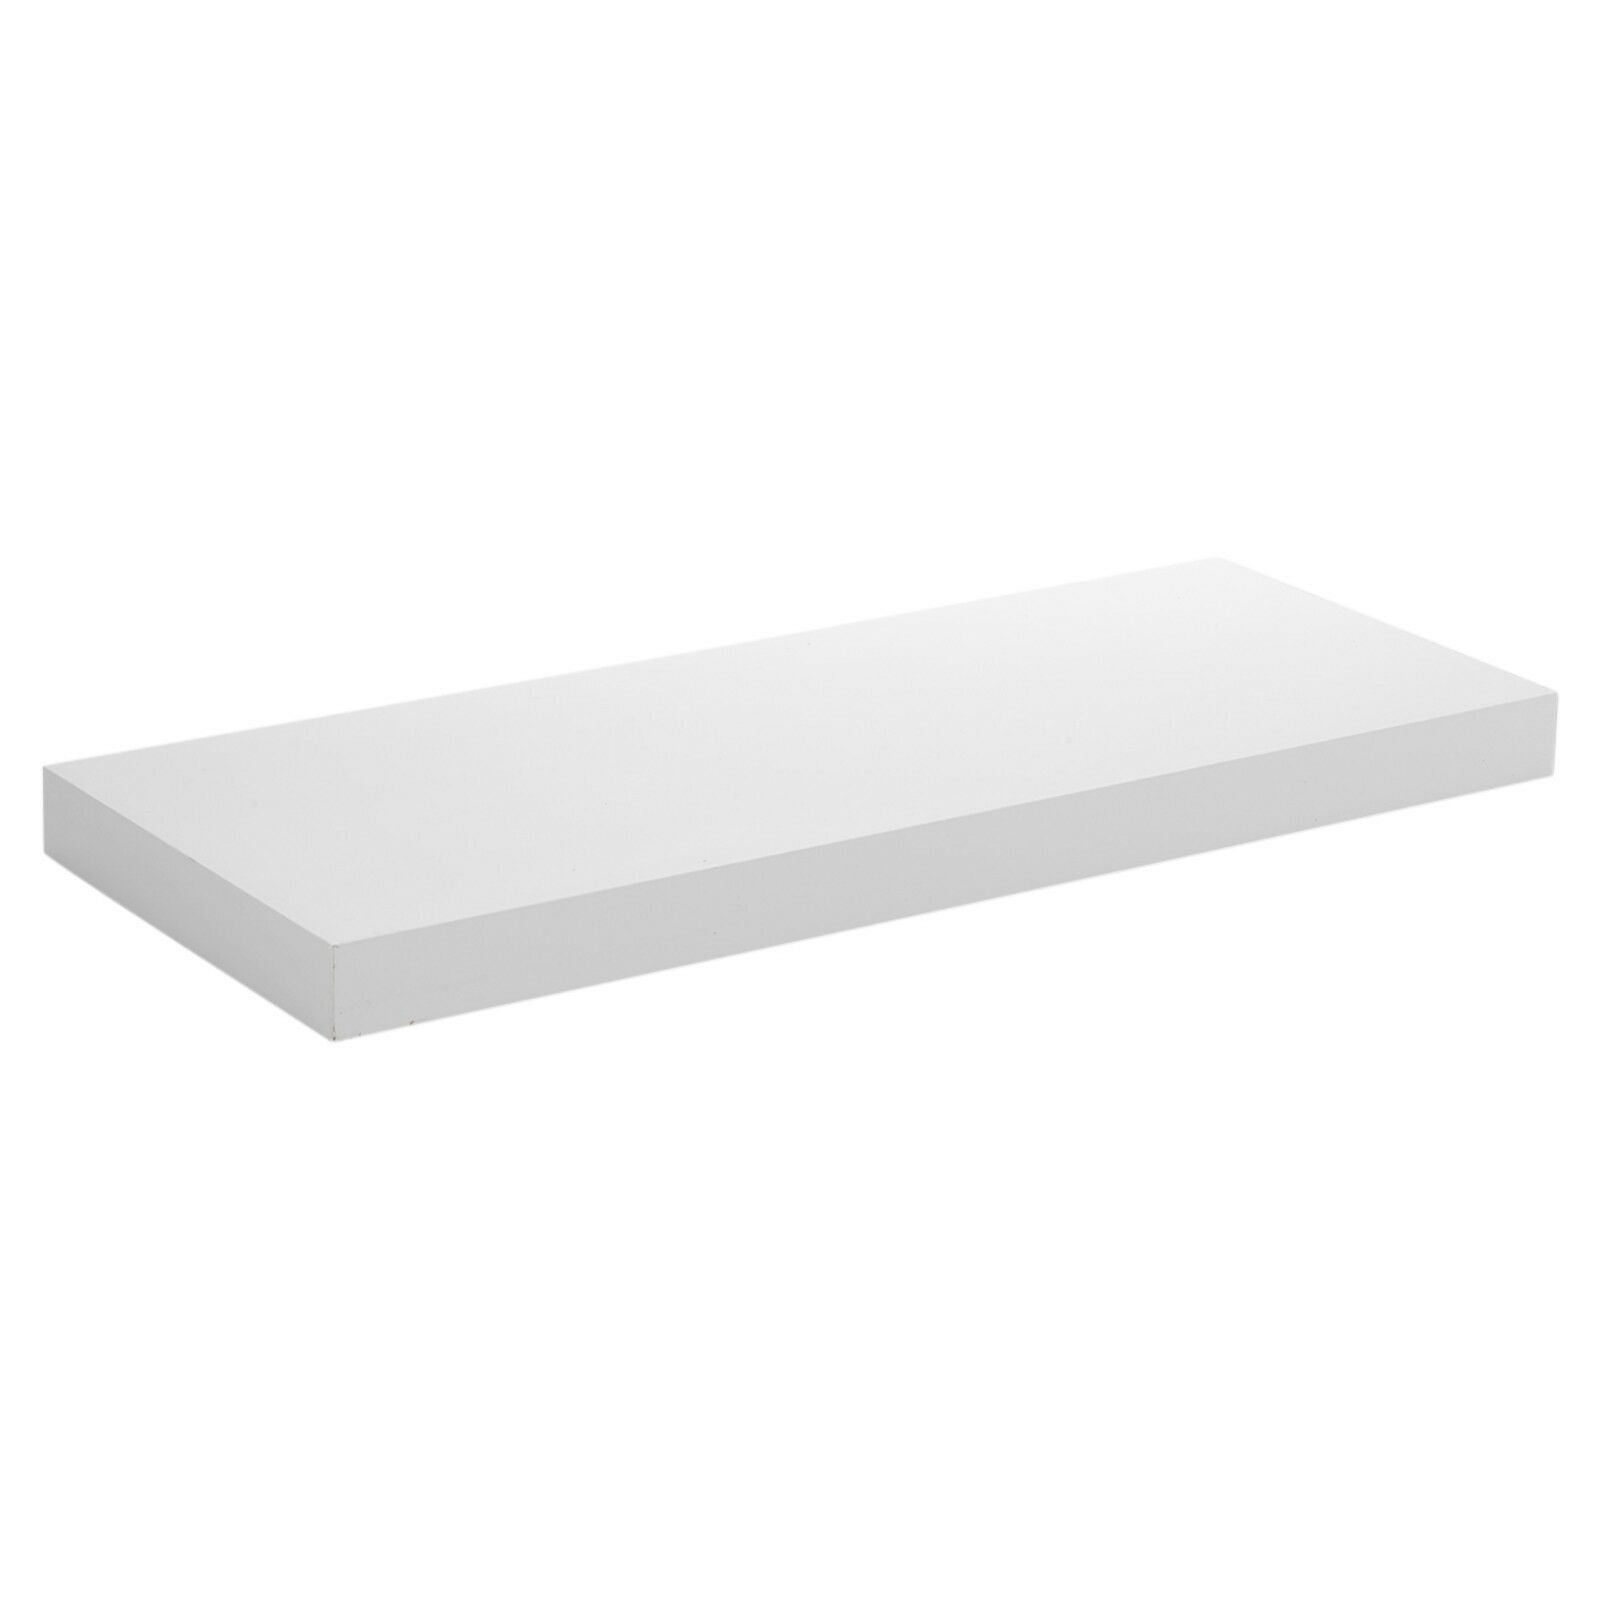 Floating-Wooden-Wall-Shelves-Shelf-Wall-Storage-3-Sizes-White-and-Marble thumbnail 12